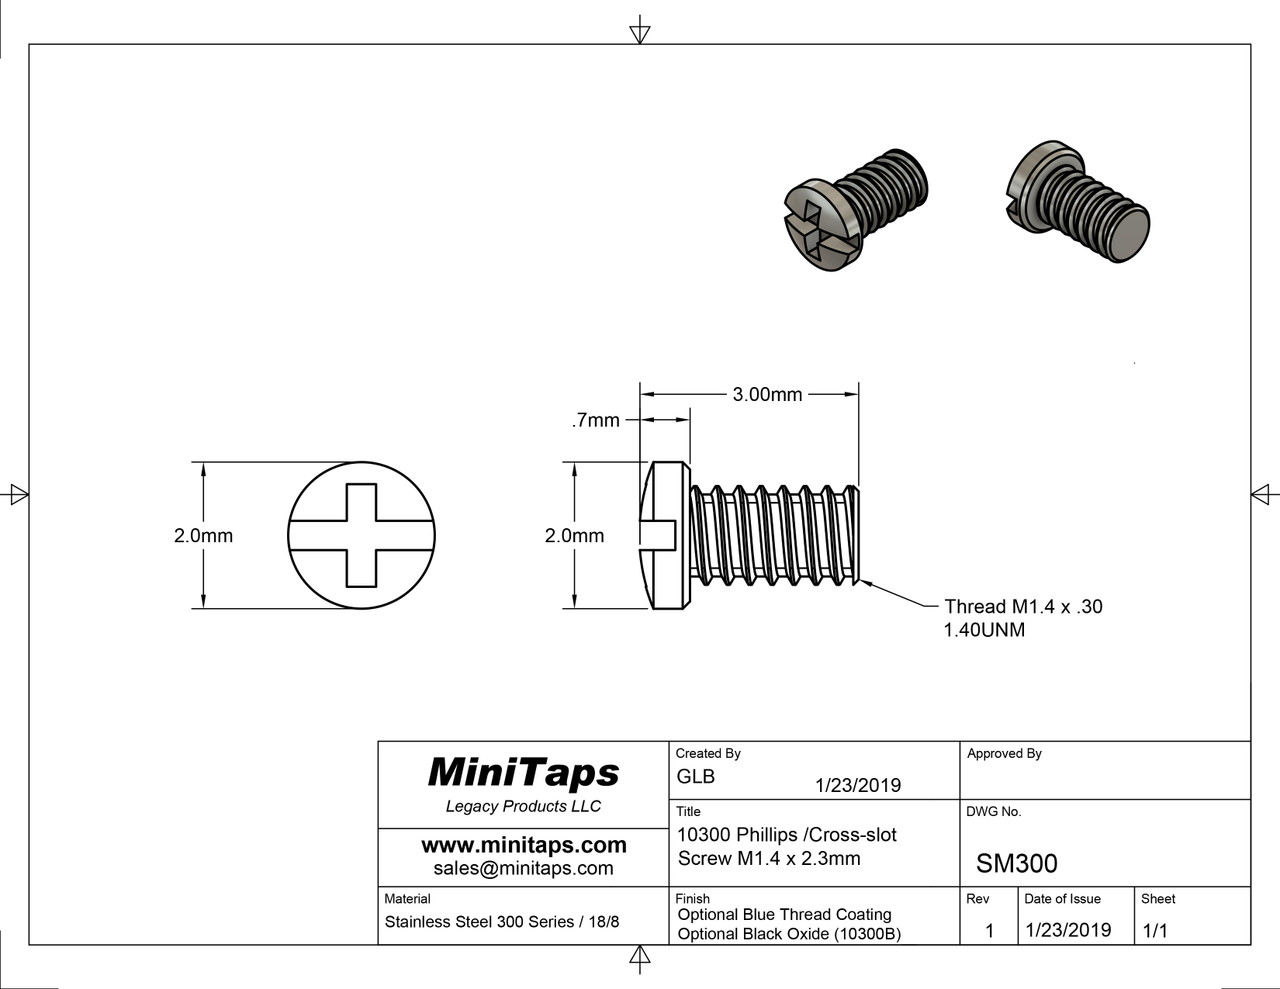 Thread M1.4 pitch .30mm length 2.3mm Machine Screw Pan Head with Philips X-Slot drive overall length 3.0mm material stainless steel color Black Oxide,  100 count package  Alternatively  we have stock of this item in silver color stainless steel.